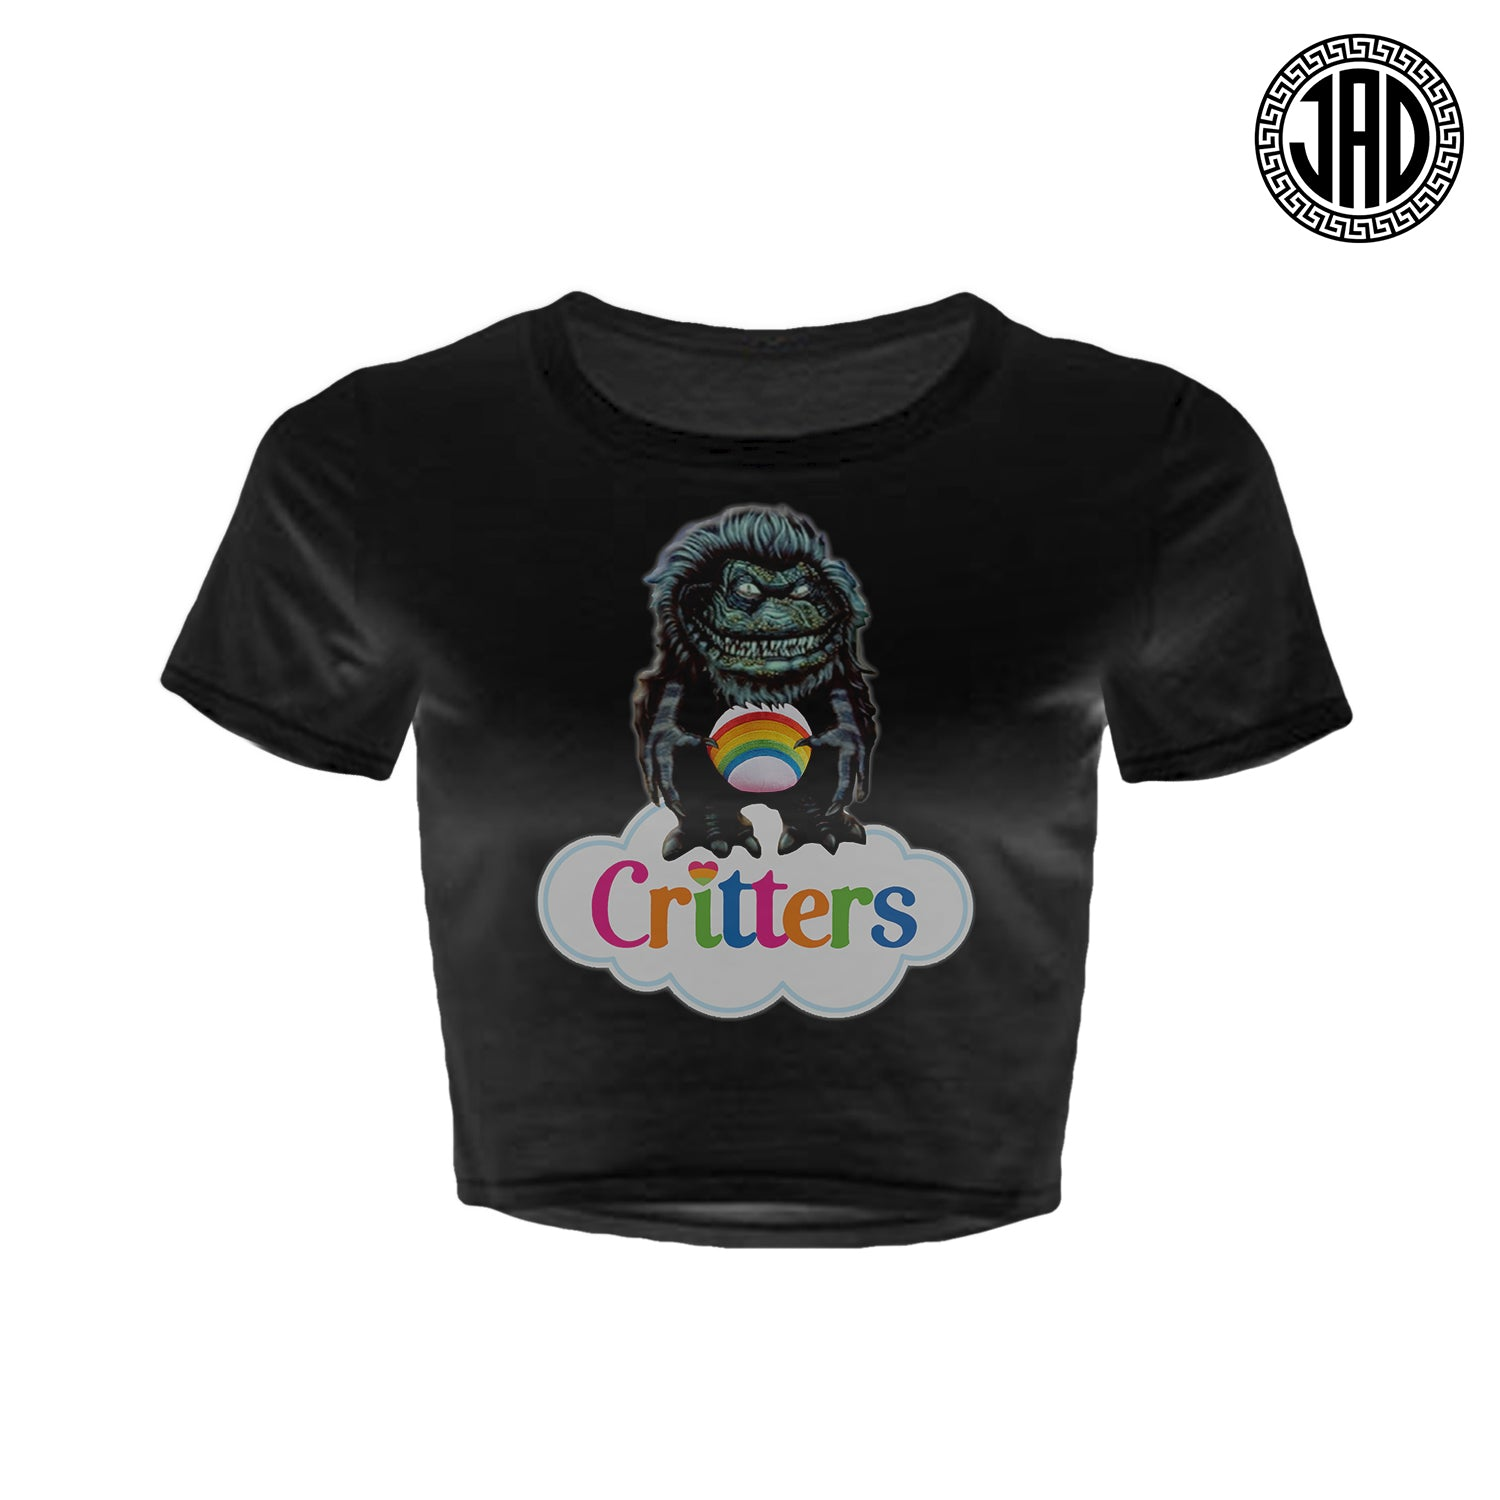 CritterBears - Women's Crop Top